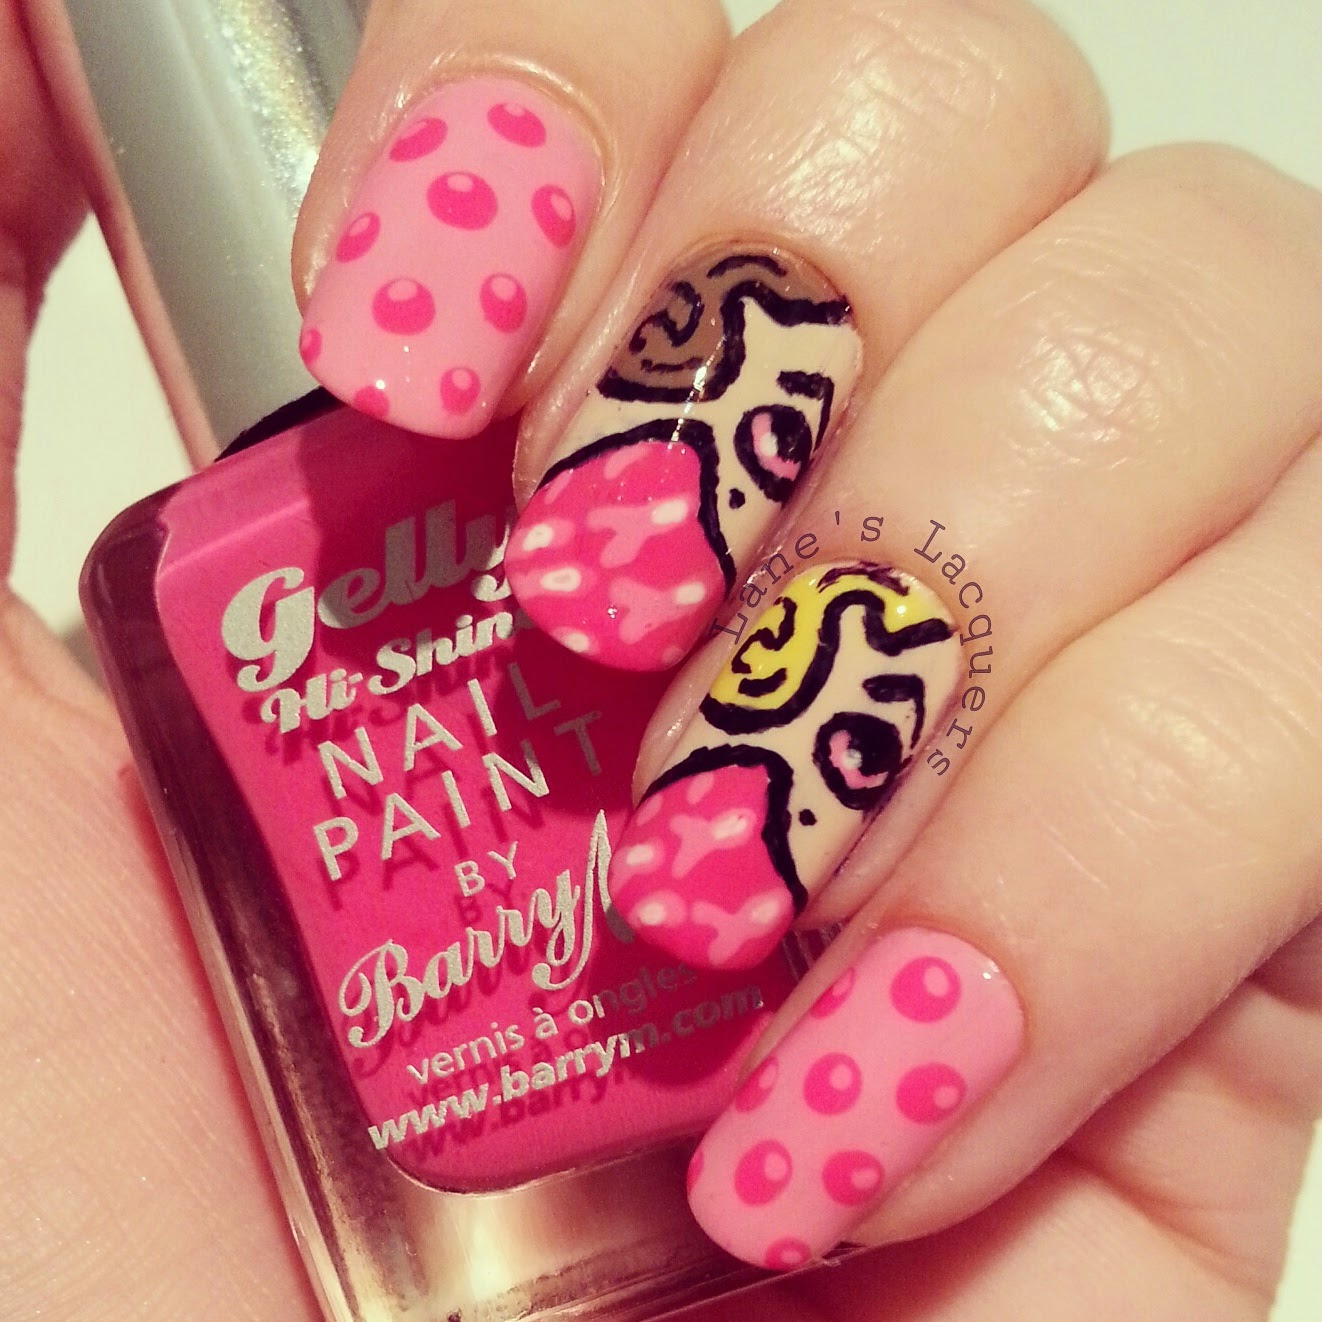 emilio-ramos-breast-cancer-awareness-nail-art (2)